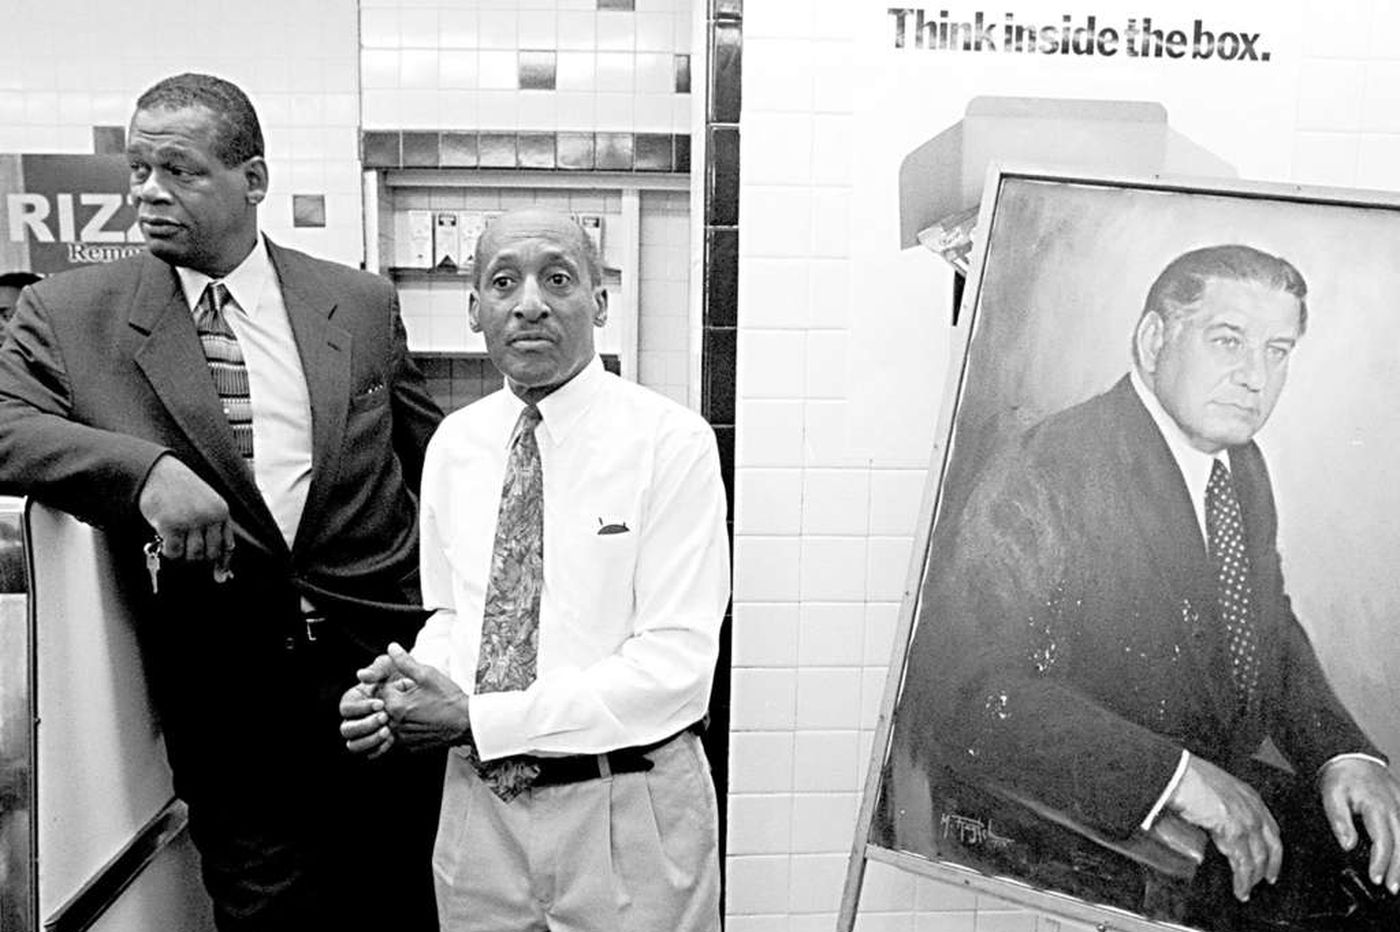 Anthony Fulwood, 72, bodyguard for Frank Rizzo, Lynne Abraham and Ron Castille